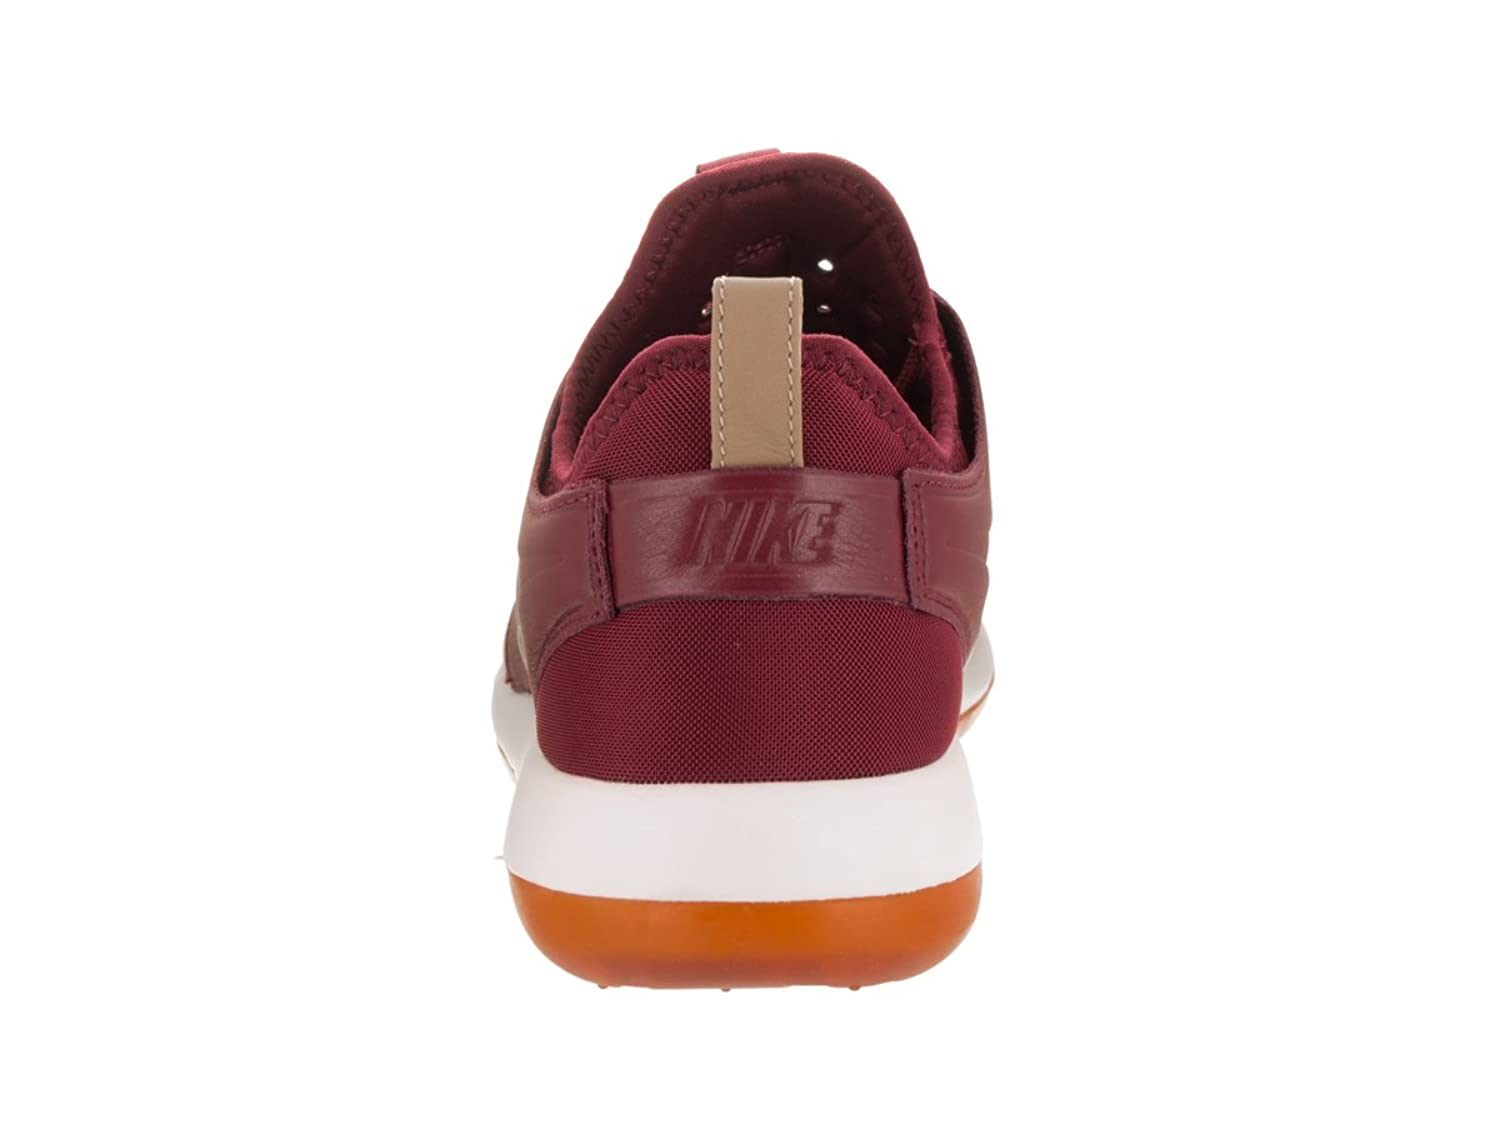 Home nike roshe two leather prm - Amazon Com Nike Men S Roshe Two Leather Prm Running Shoe Road Running